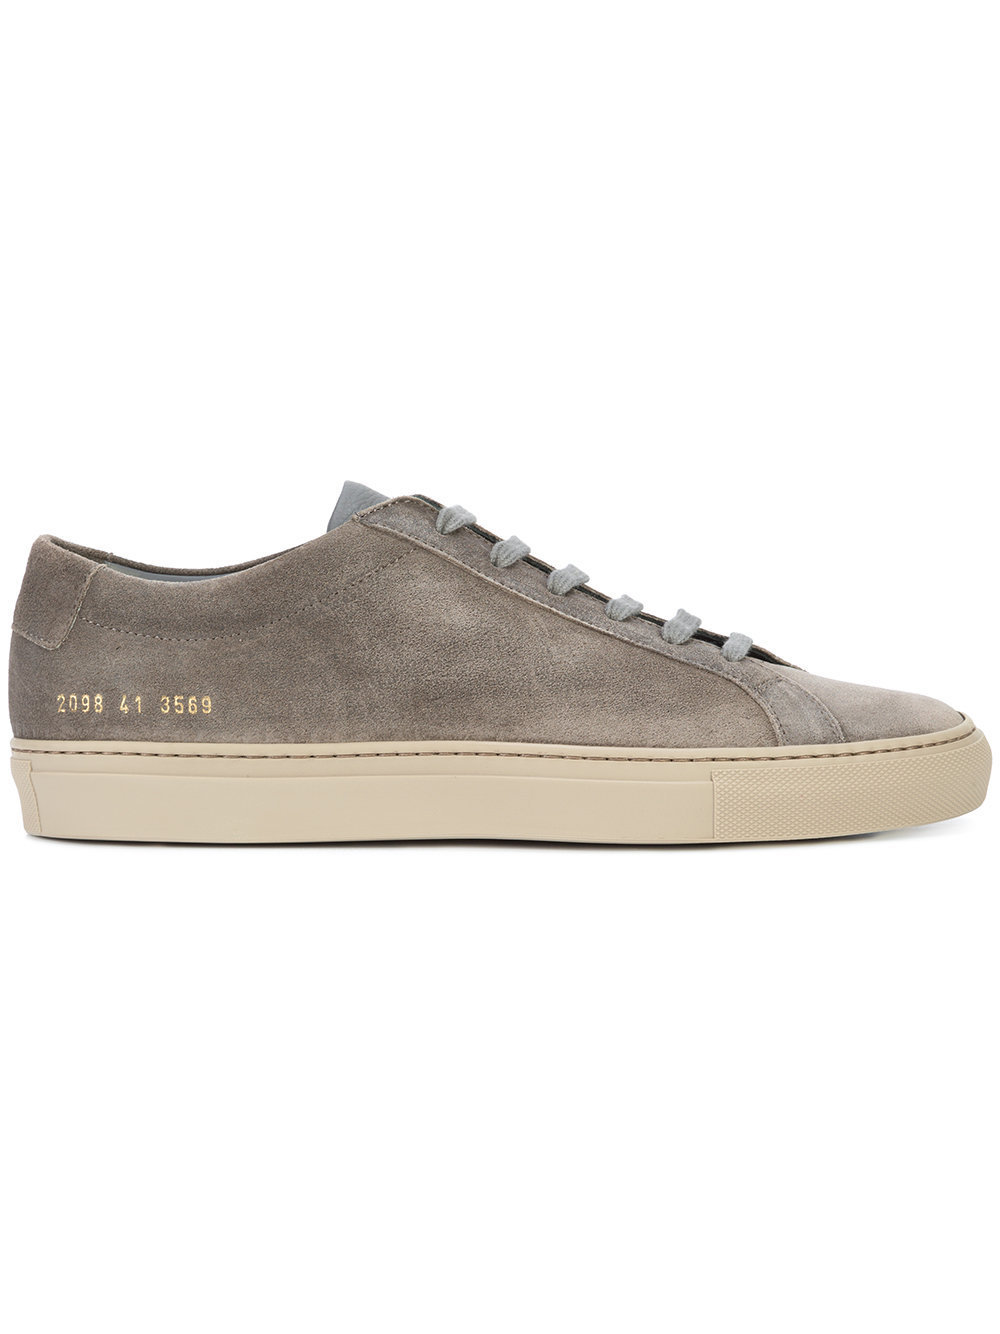 [VIPSALE] Common Projects/ レースアップスニーカー☆グレー